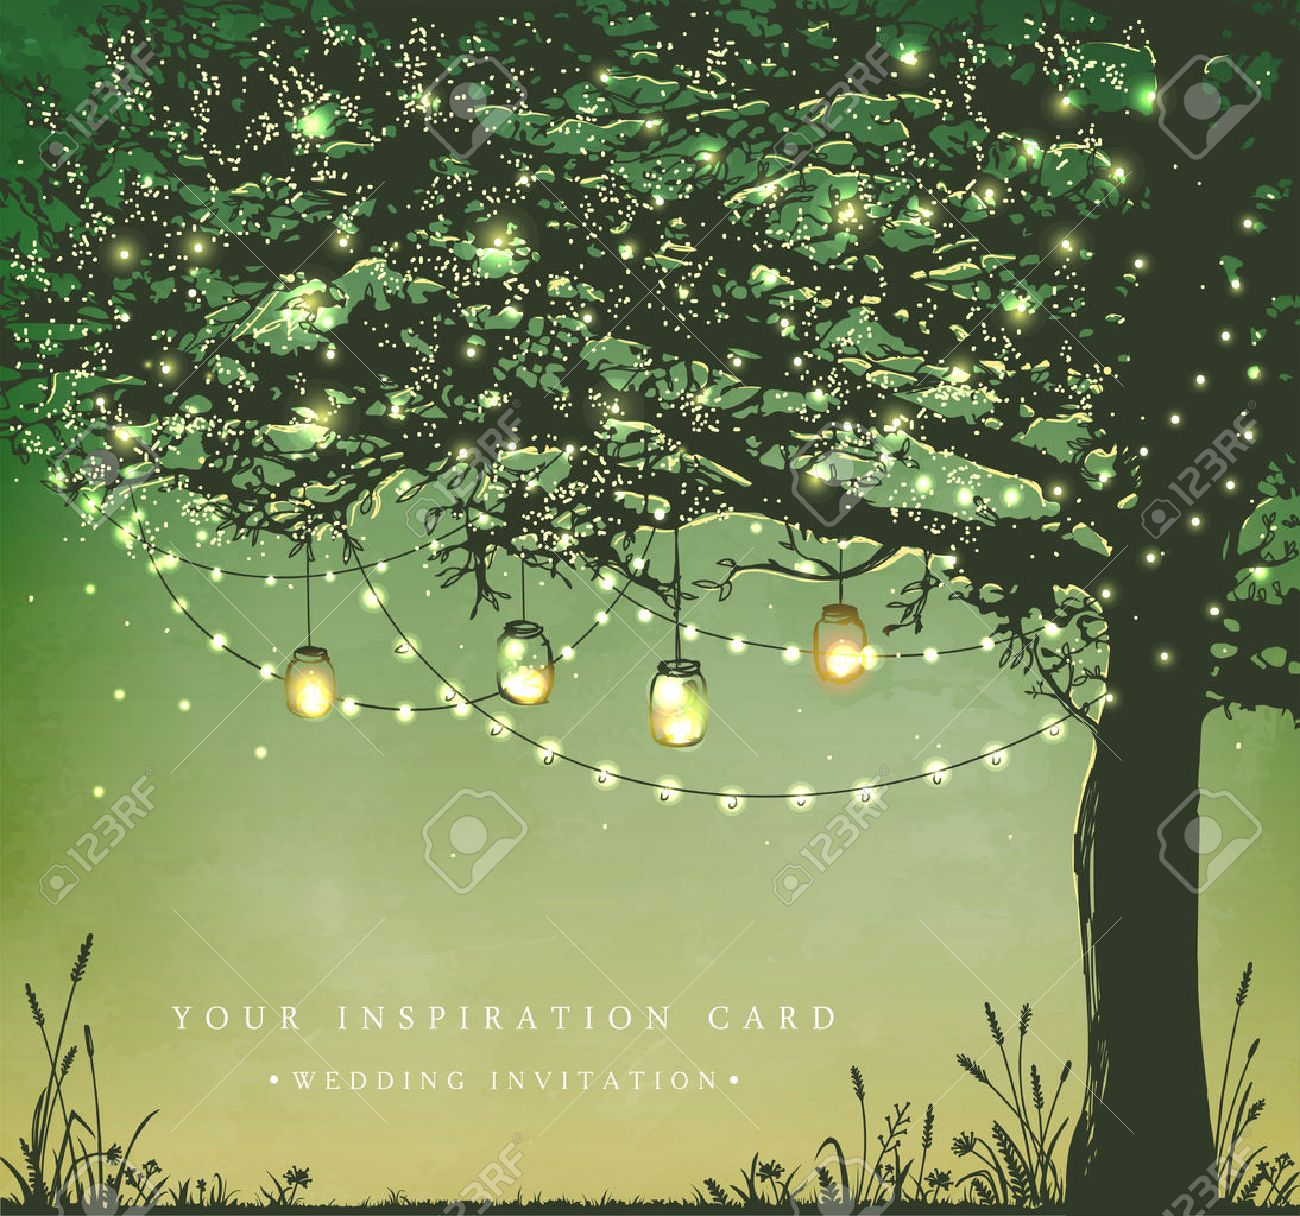 Hanging decorative holiday lights for a back yard party. Garden party invitation. Inspiration card for wedding, date, birthday, tea party - 52799735